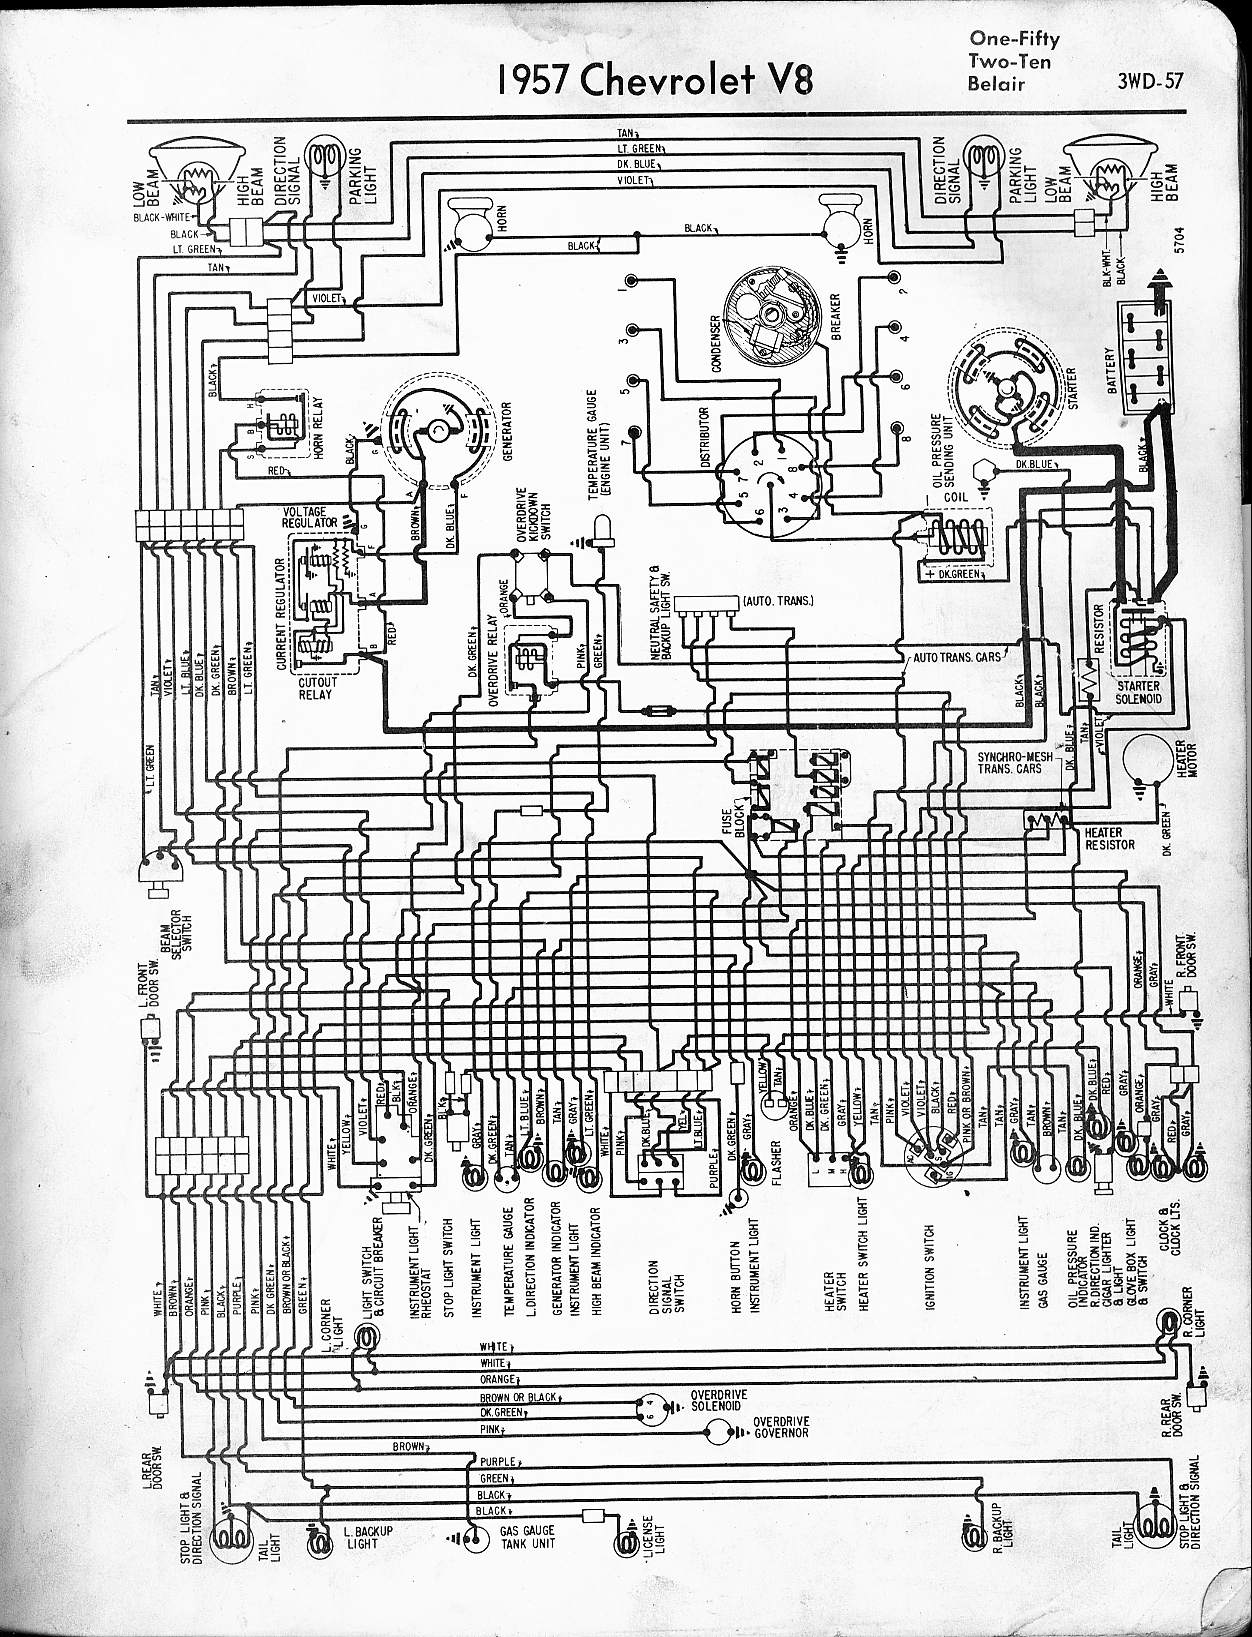 MWireChev57_3WD 057 57 65 chevy wiring diagrams 1957 chevy bel air wiring harness at mifinder.co